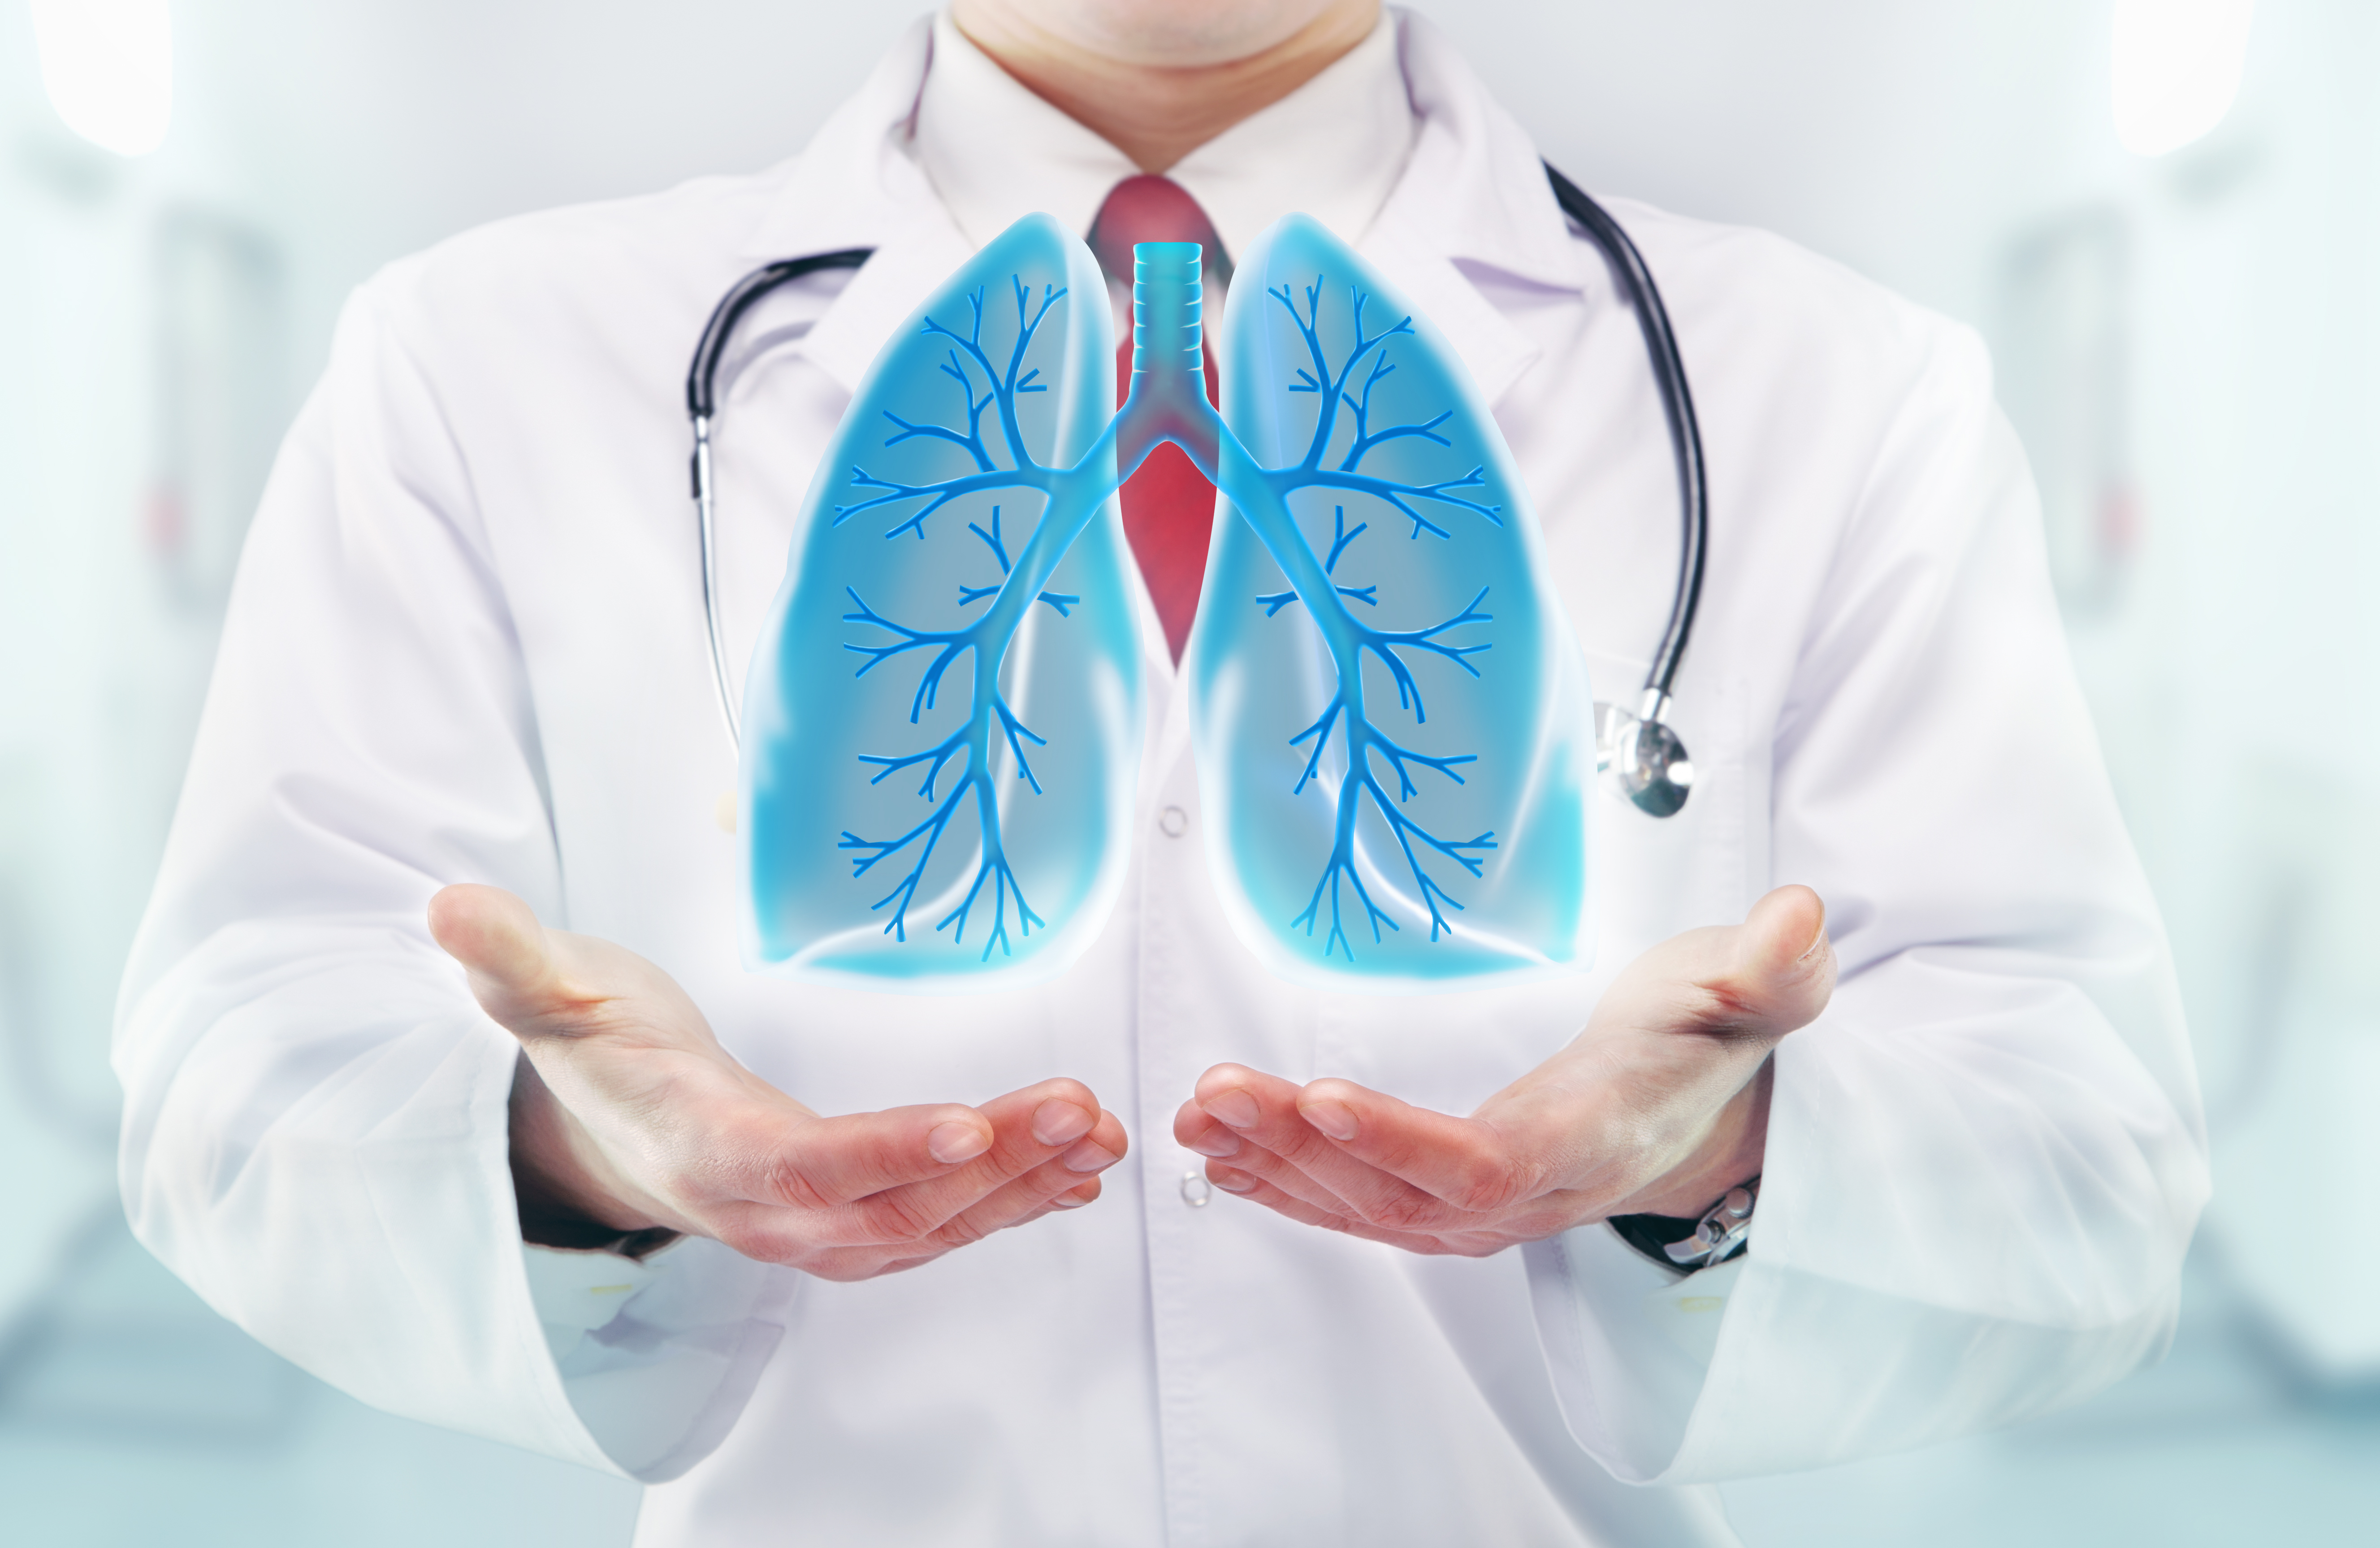 Vertex, Parion Collaboration to Advance Development of Potential Therapeutic Strategy for CF, Other Pulmonary Disorders